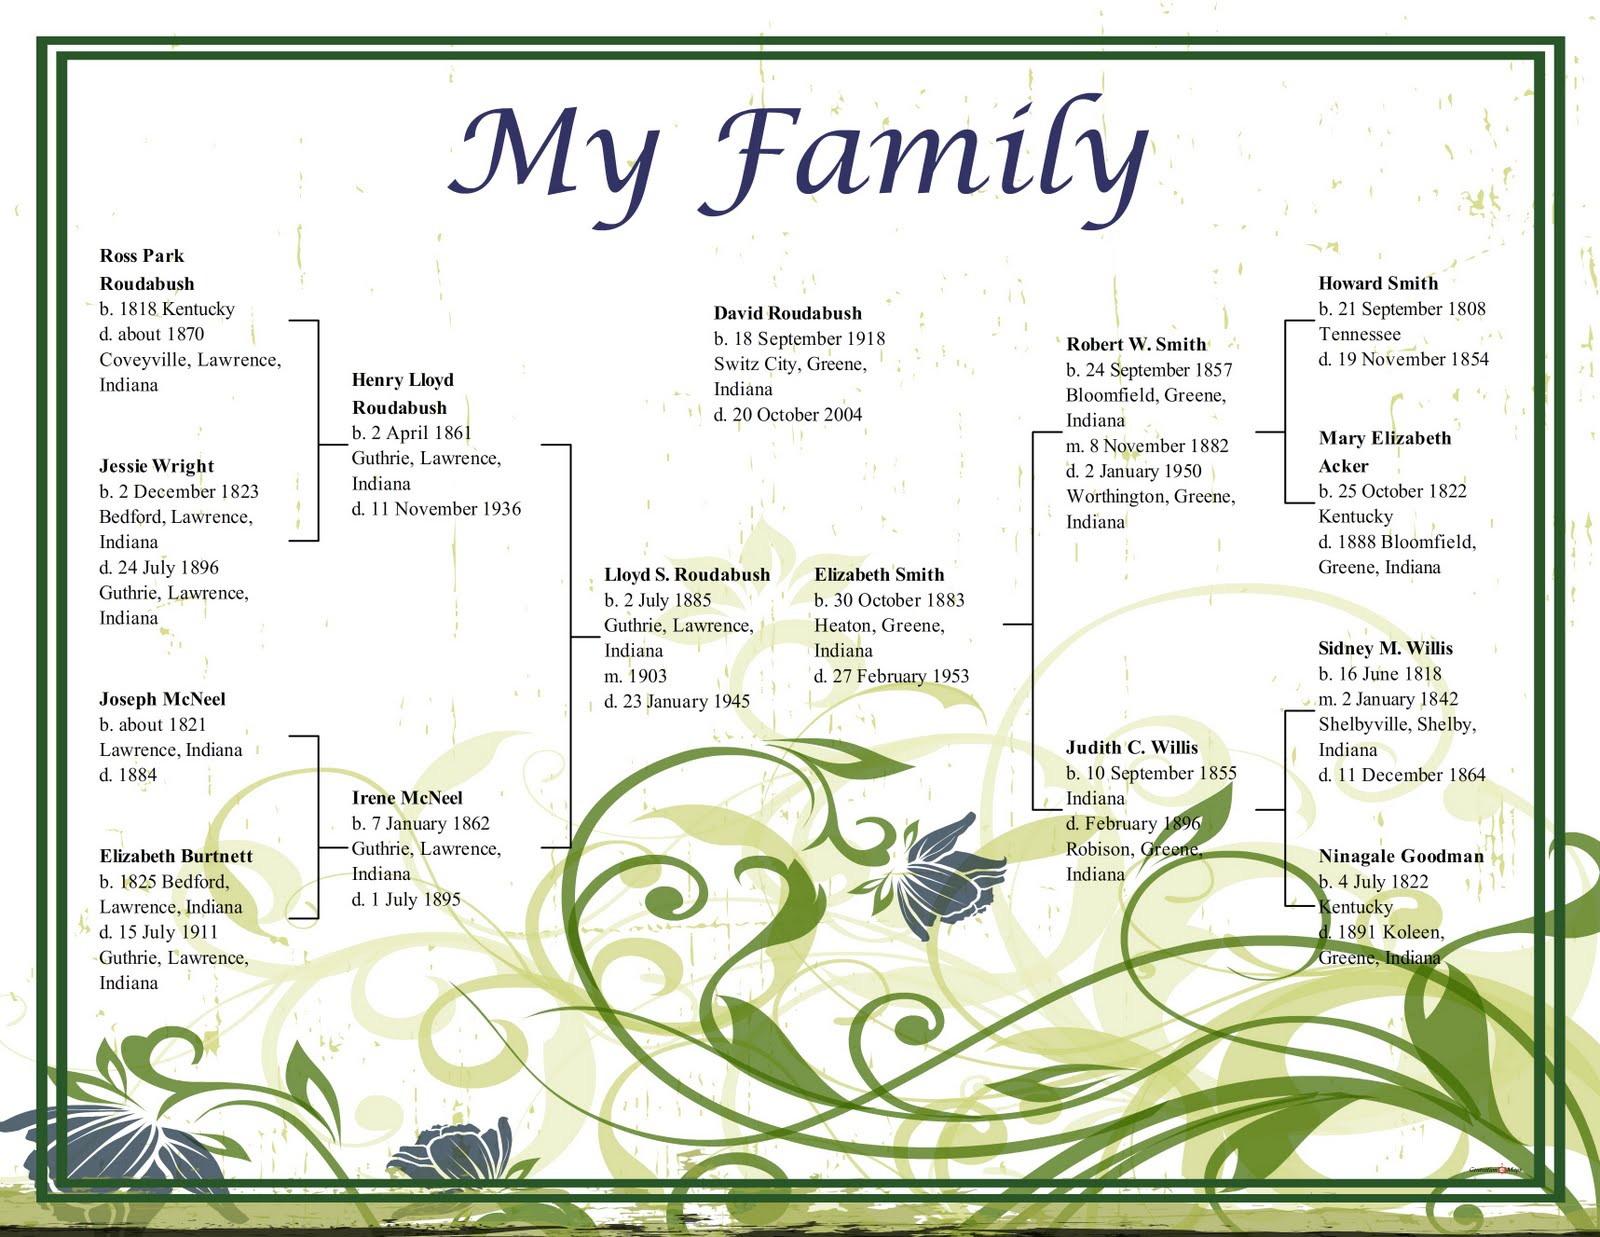 Family reunion booklet layout pictures to pin on pinterest for Souvenir program template